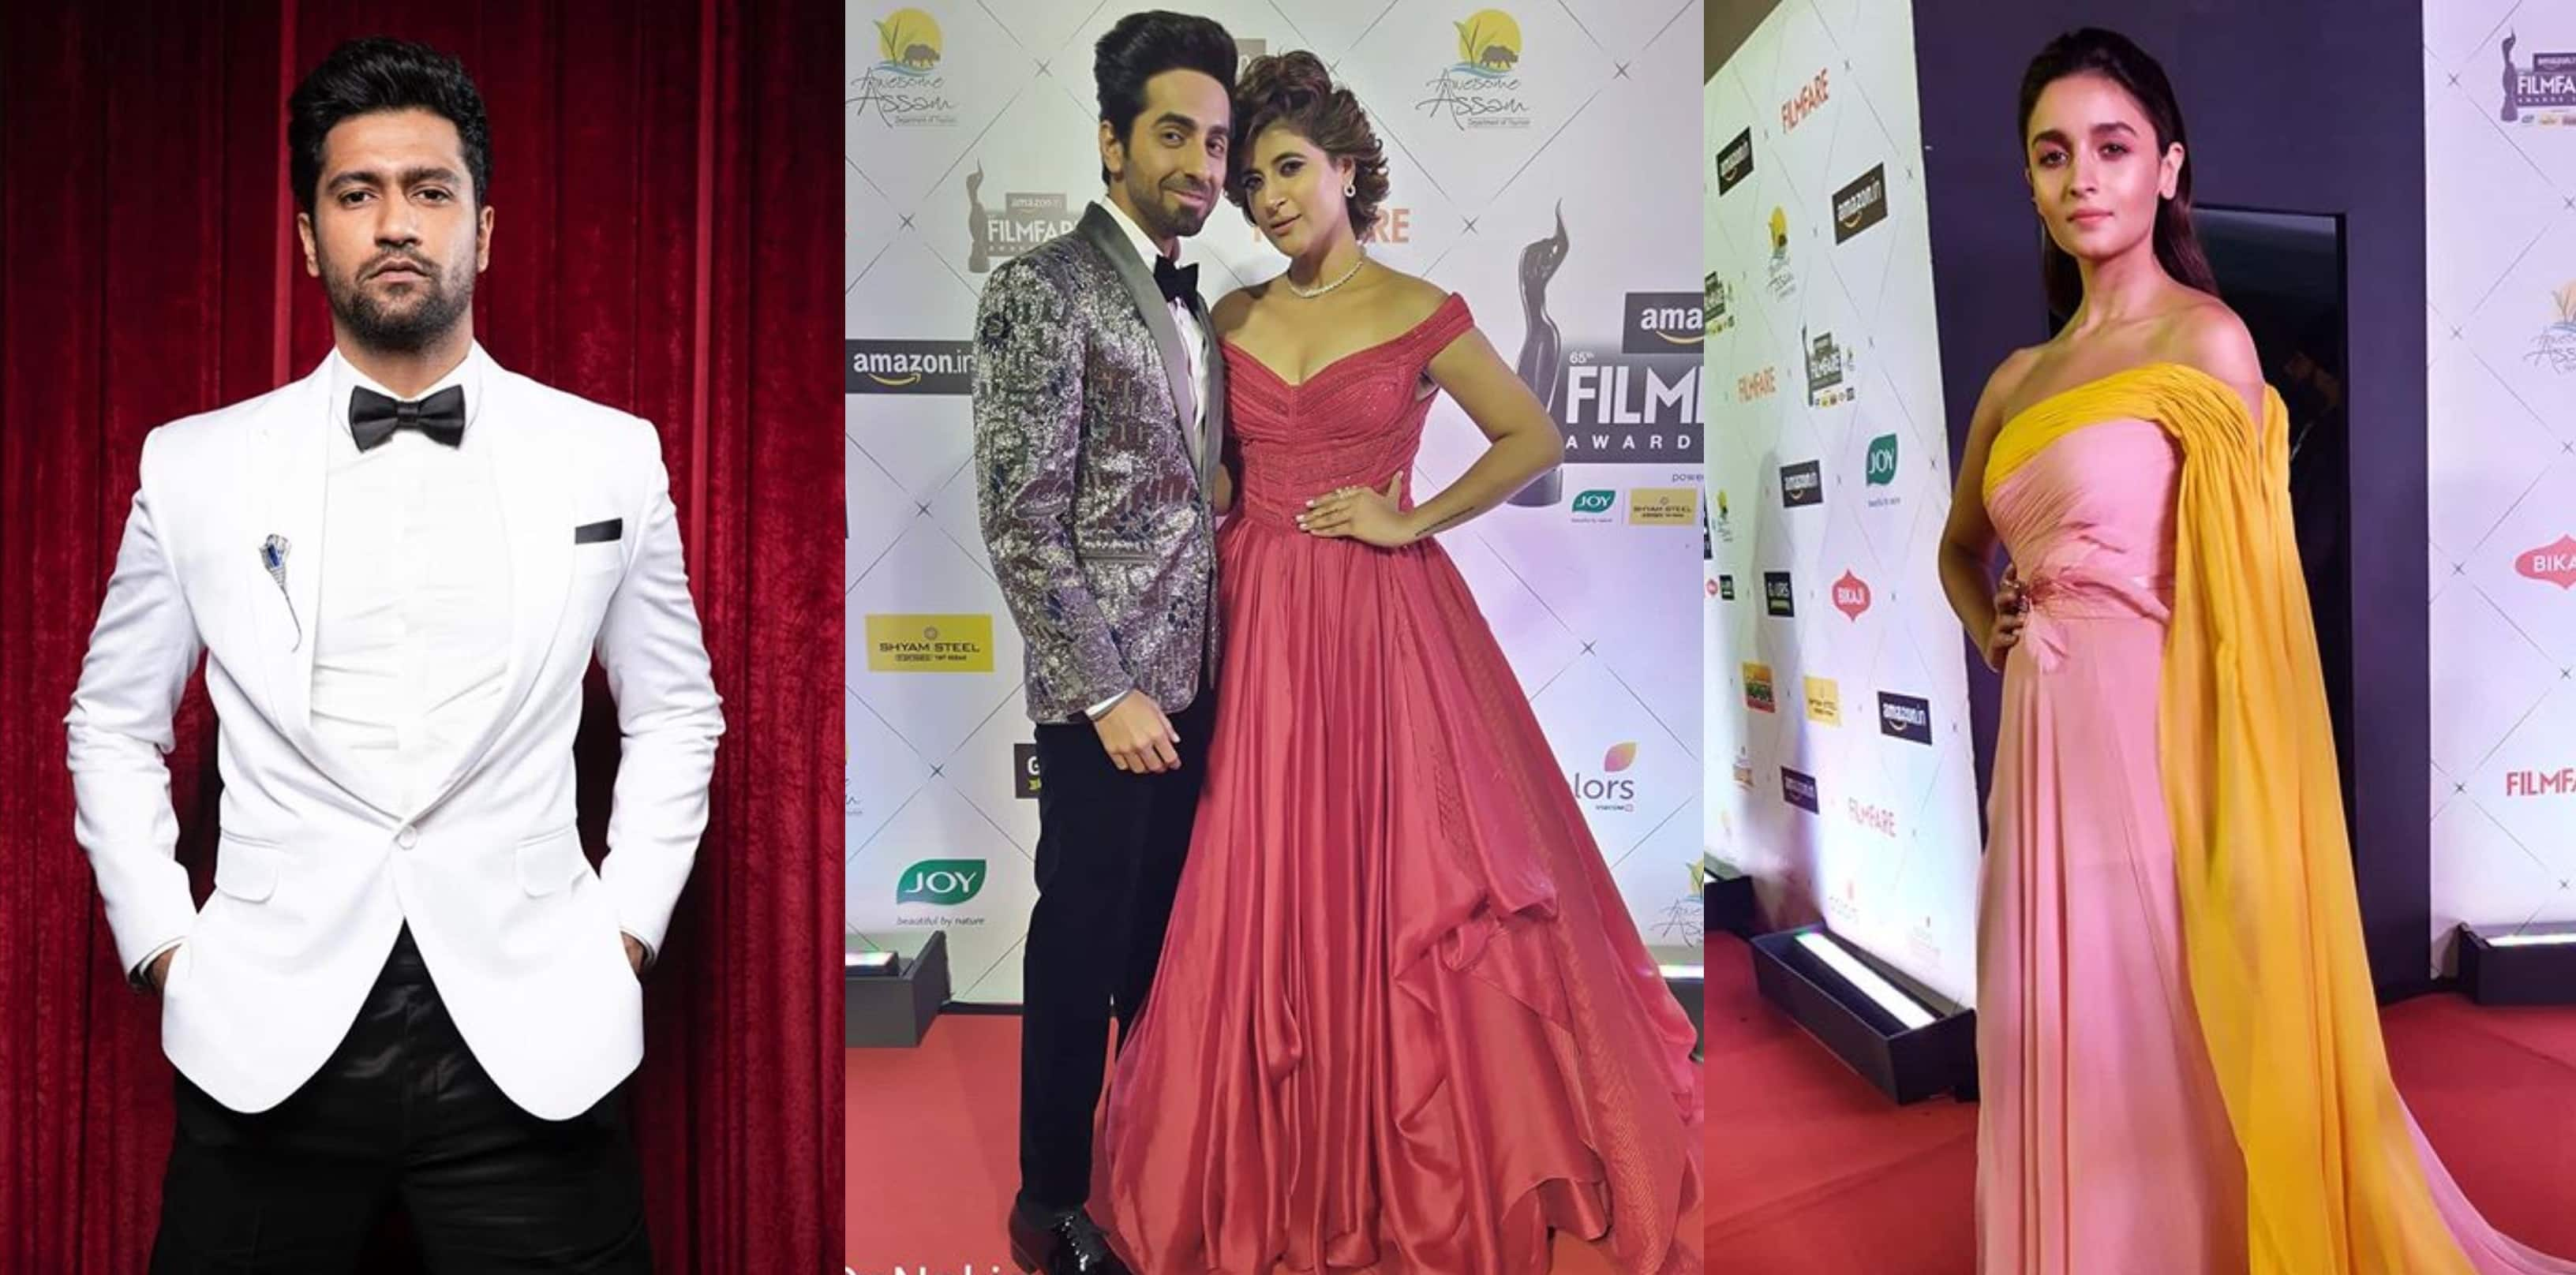 Filmfare Awards 2020: Ayushmann Khurrana, Vicky Kaushal, Alia Bhatt And Others Dazzle At The Red Carpet